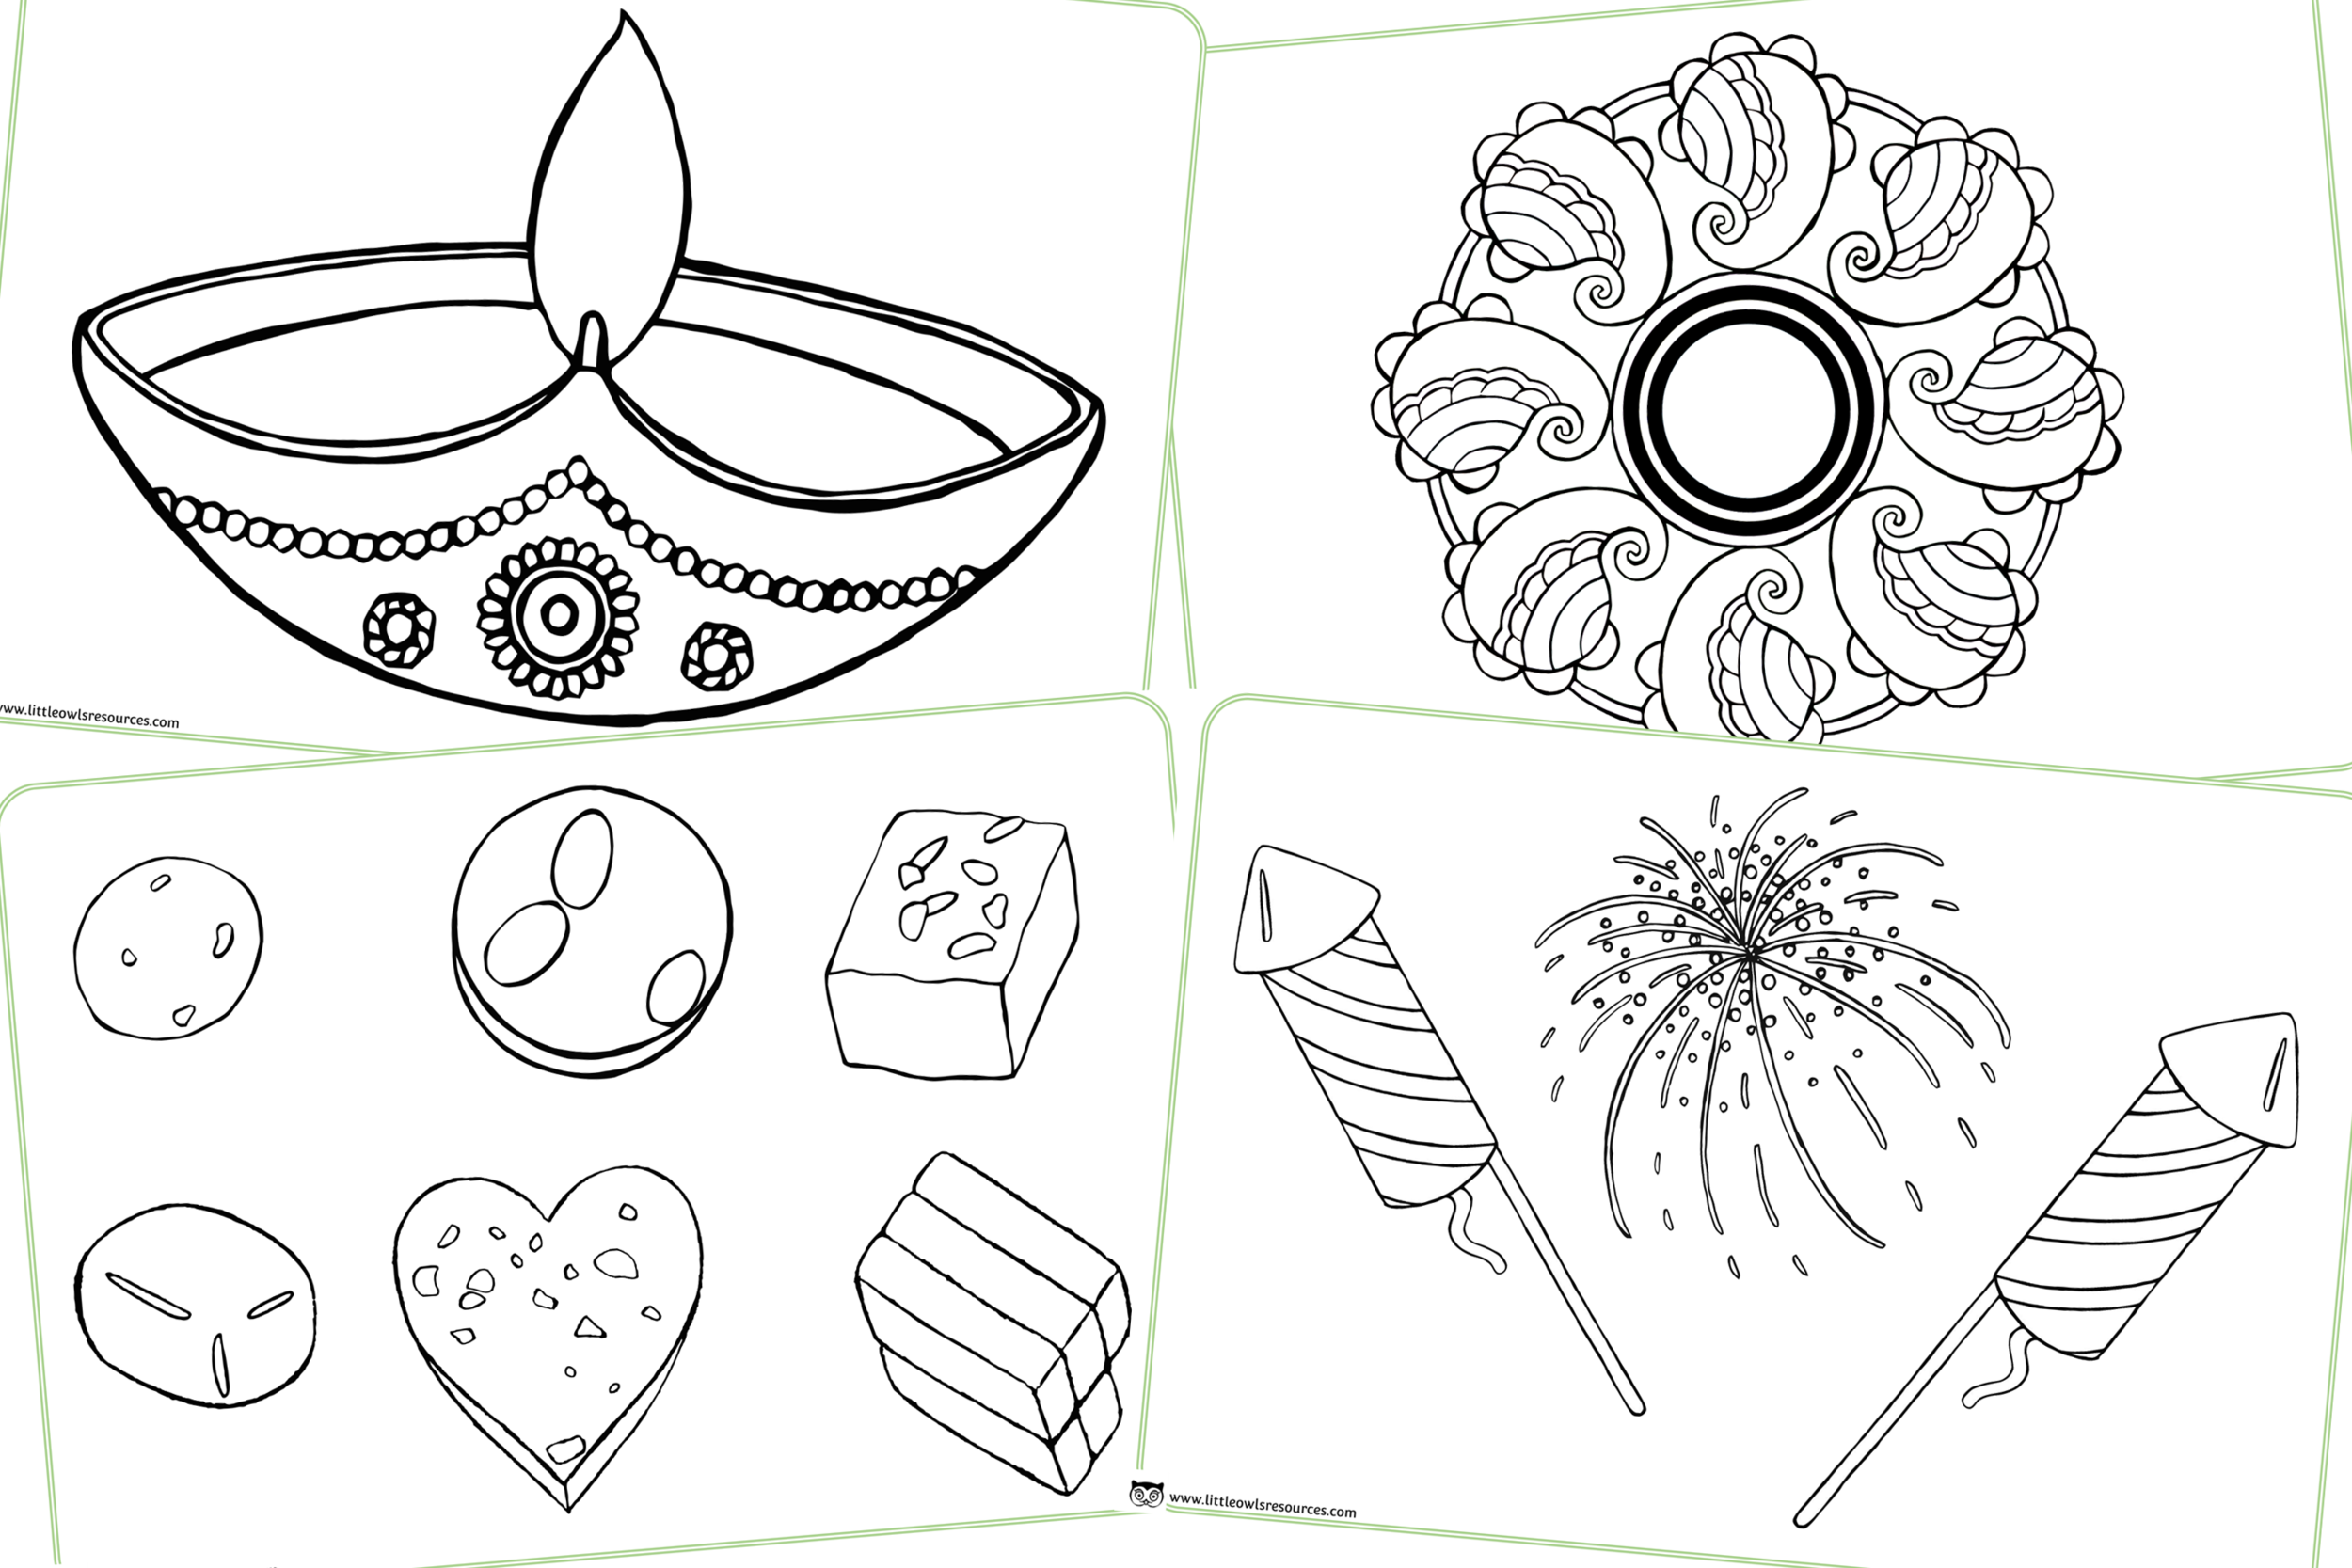 Diwali colouring sheets/pages